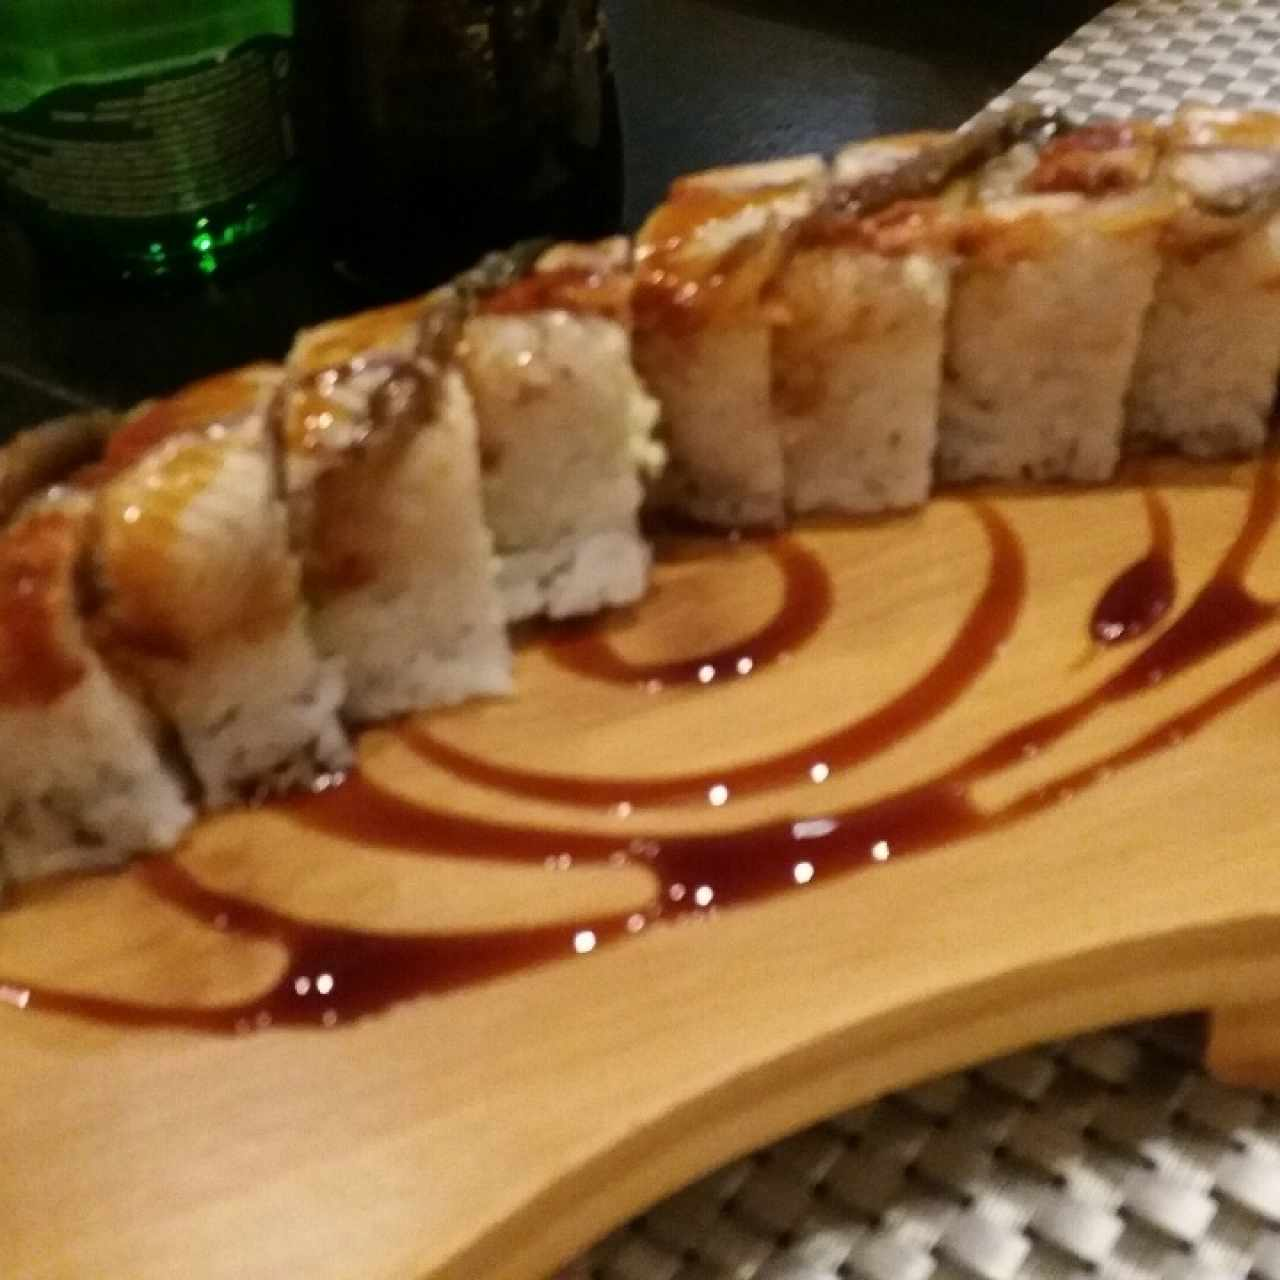 sushi de anguila de rest. Nómada en Strip Mall